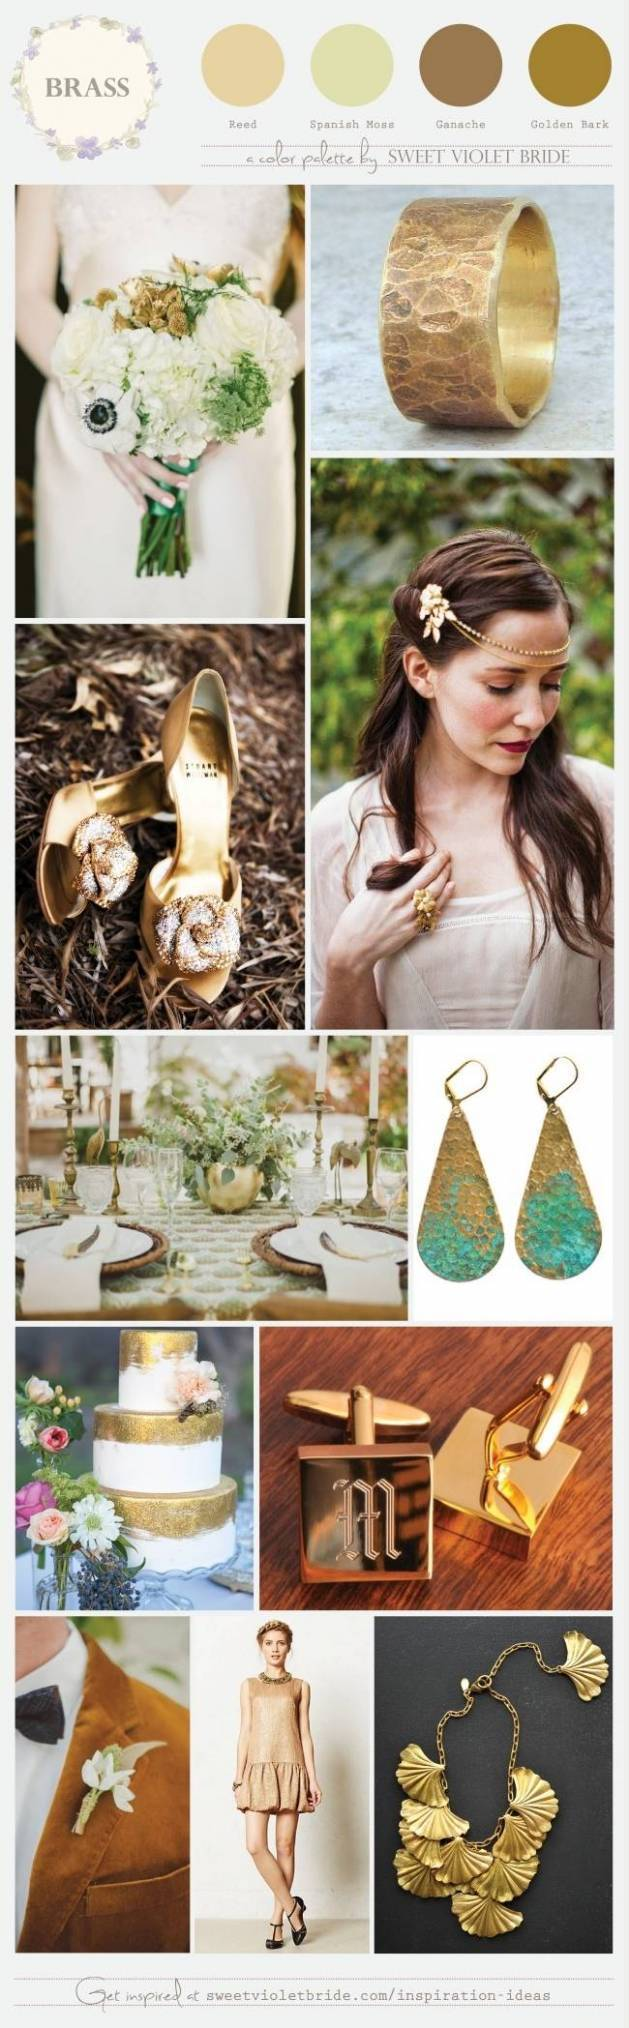 Wedding Color Palette: Brass